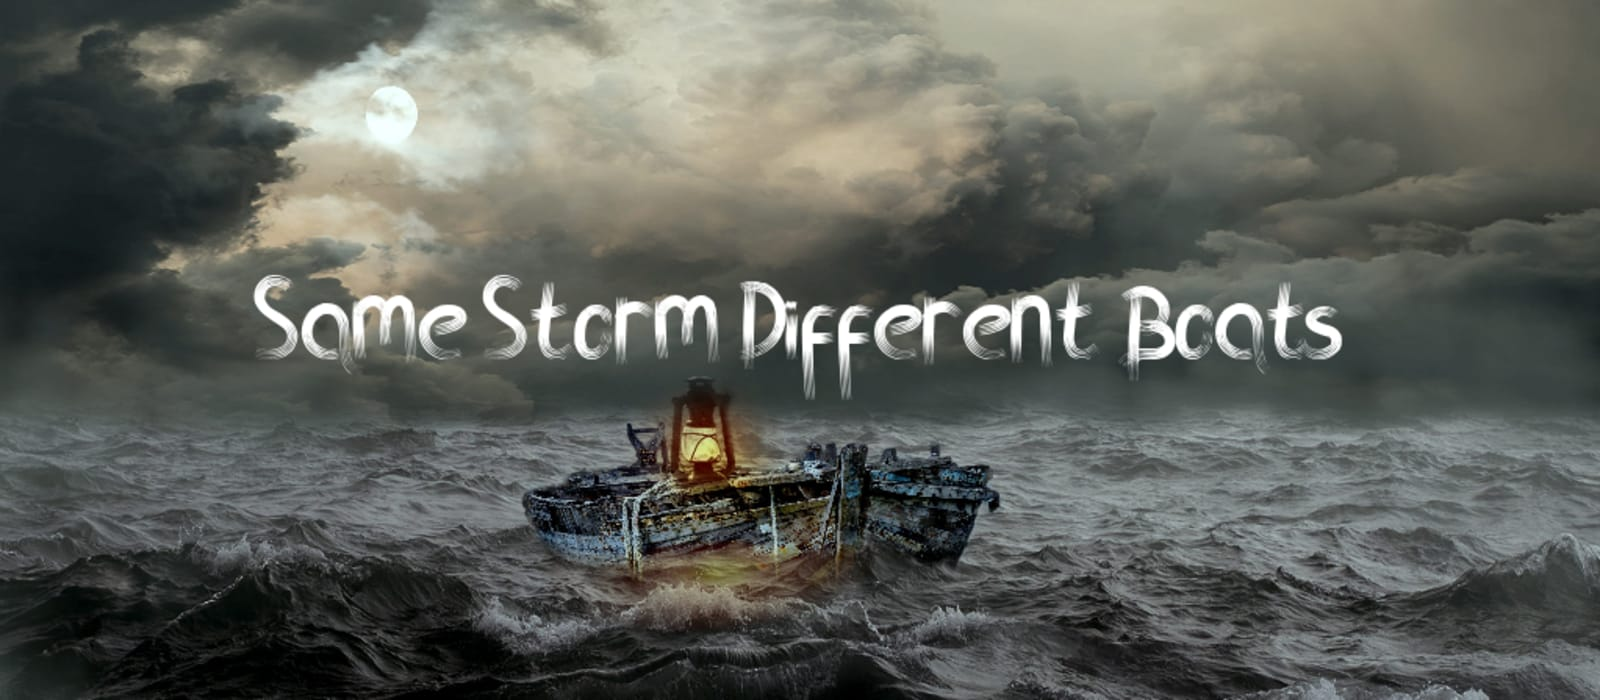 Same Storm Different Boats